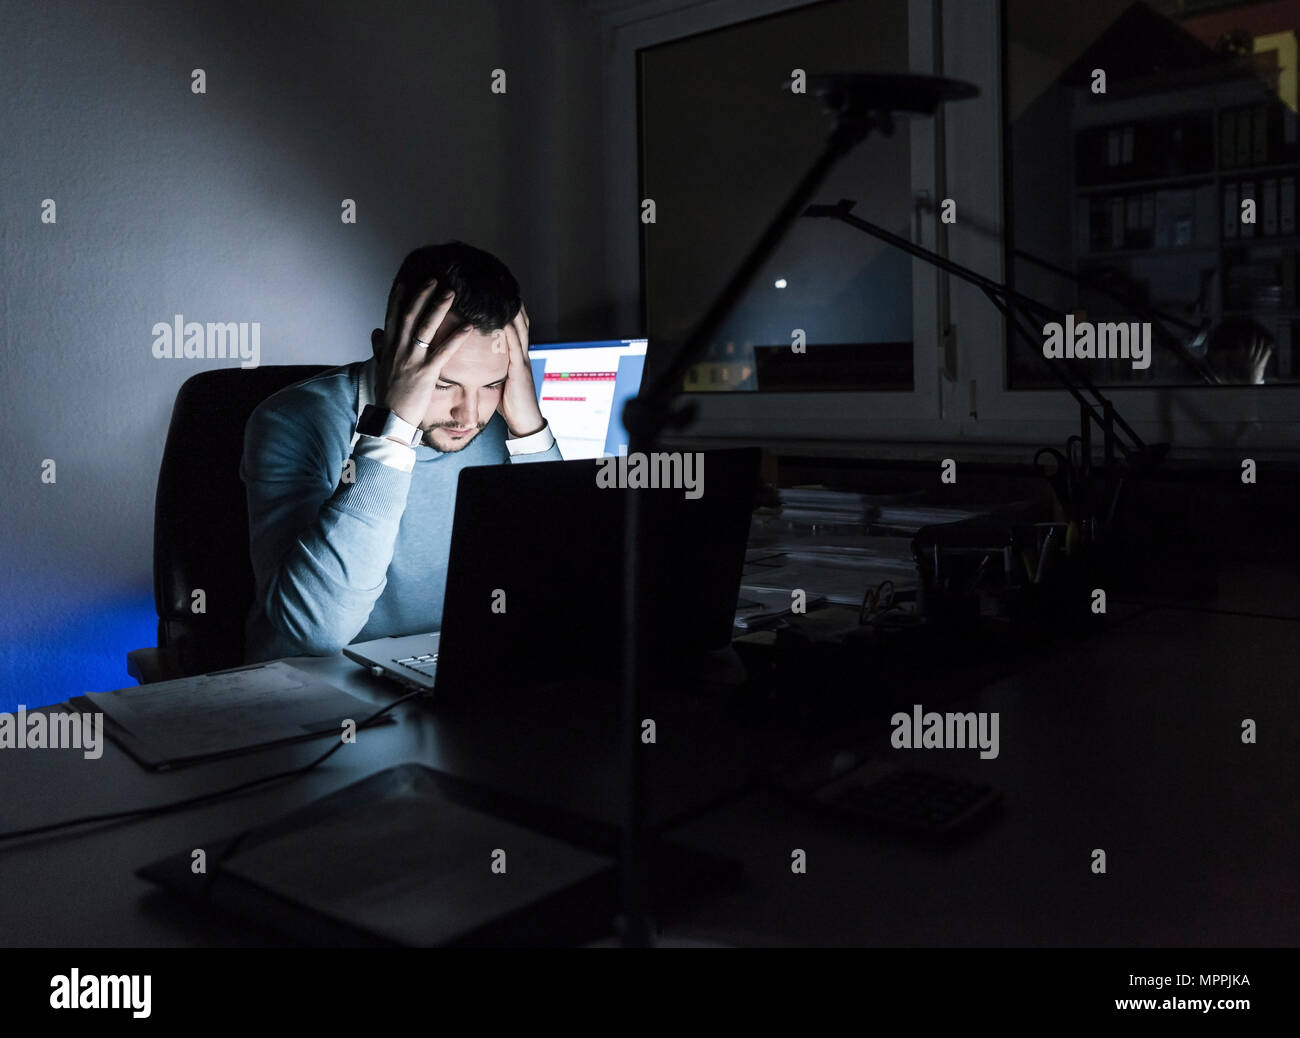 Tired businessman sitting at desk in office at night - Stock Image